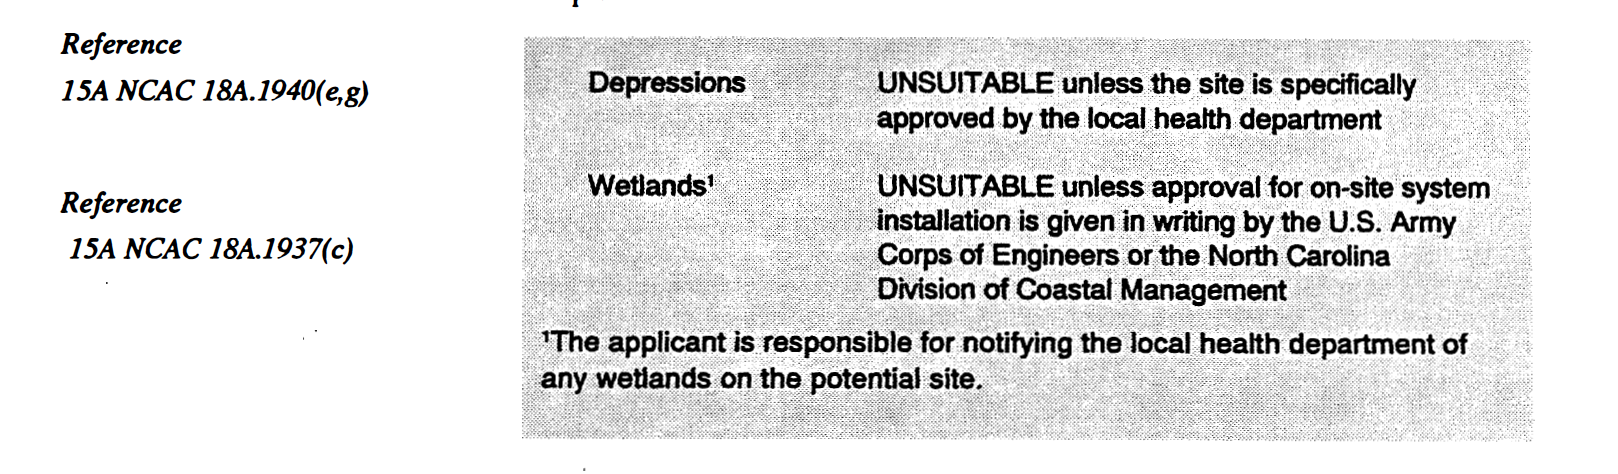 Two landscape positions that are UNSUITABLE for on-site systems are depression and wetlands.